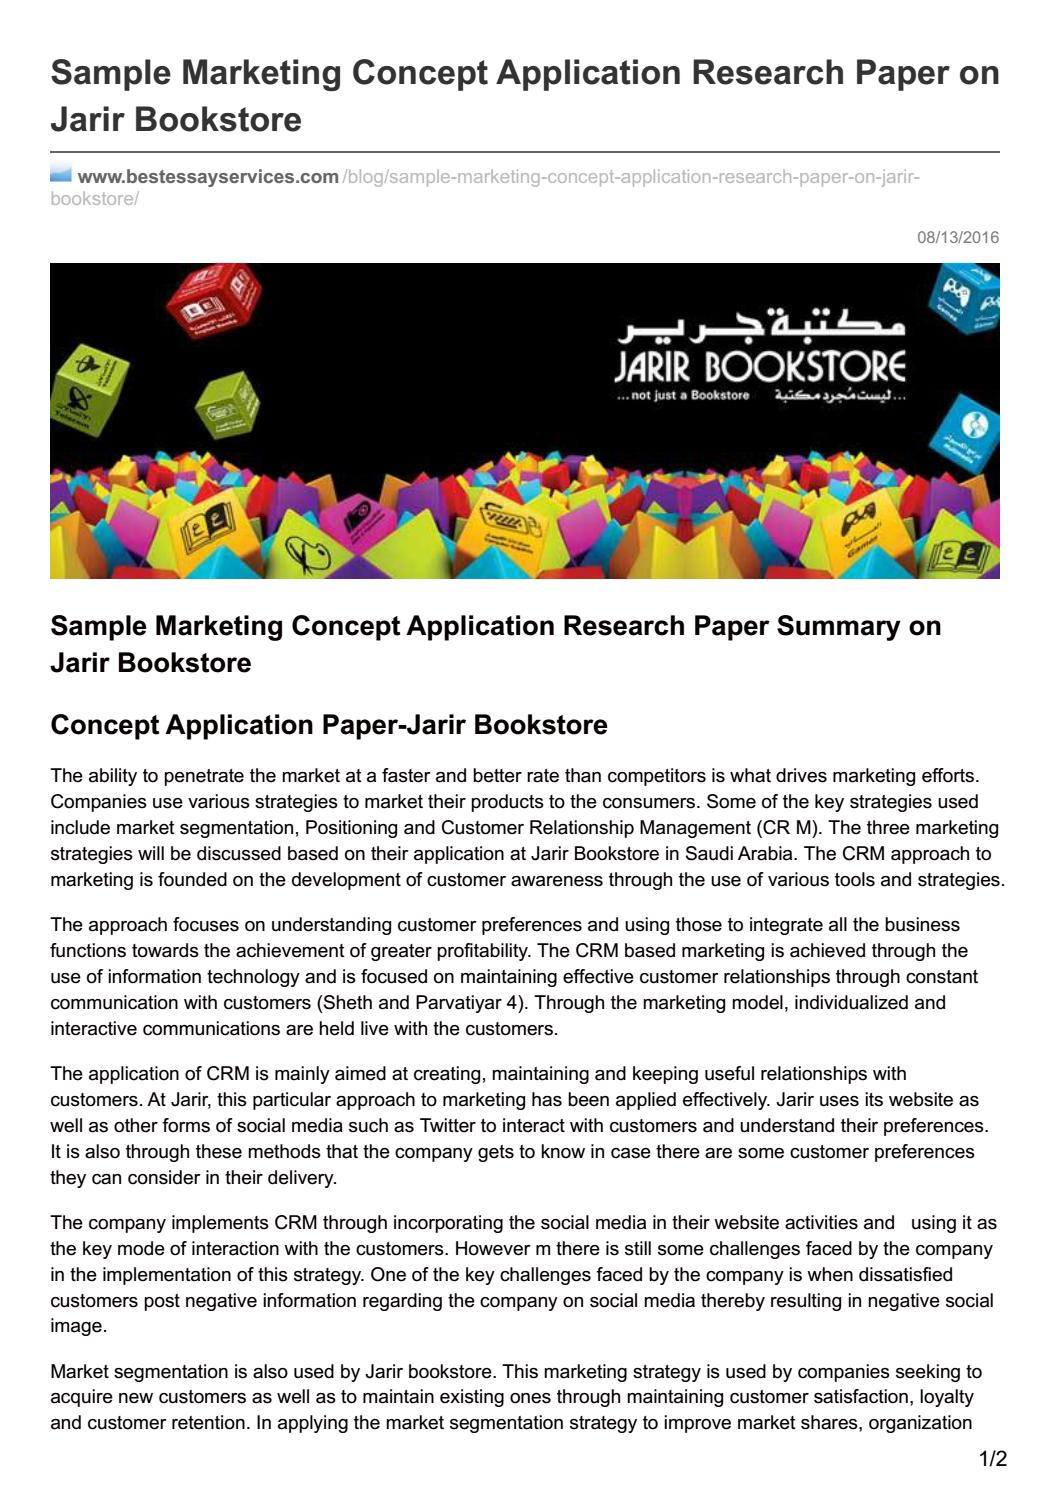 Research papers on marketing